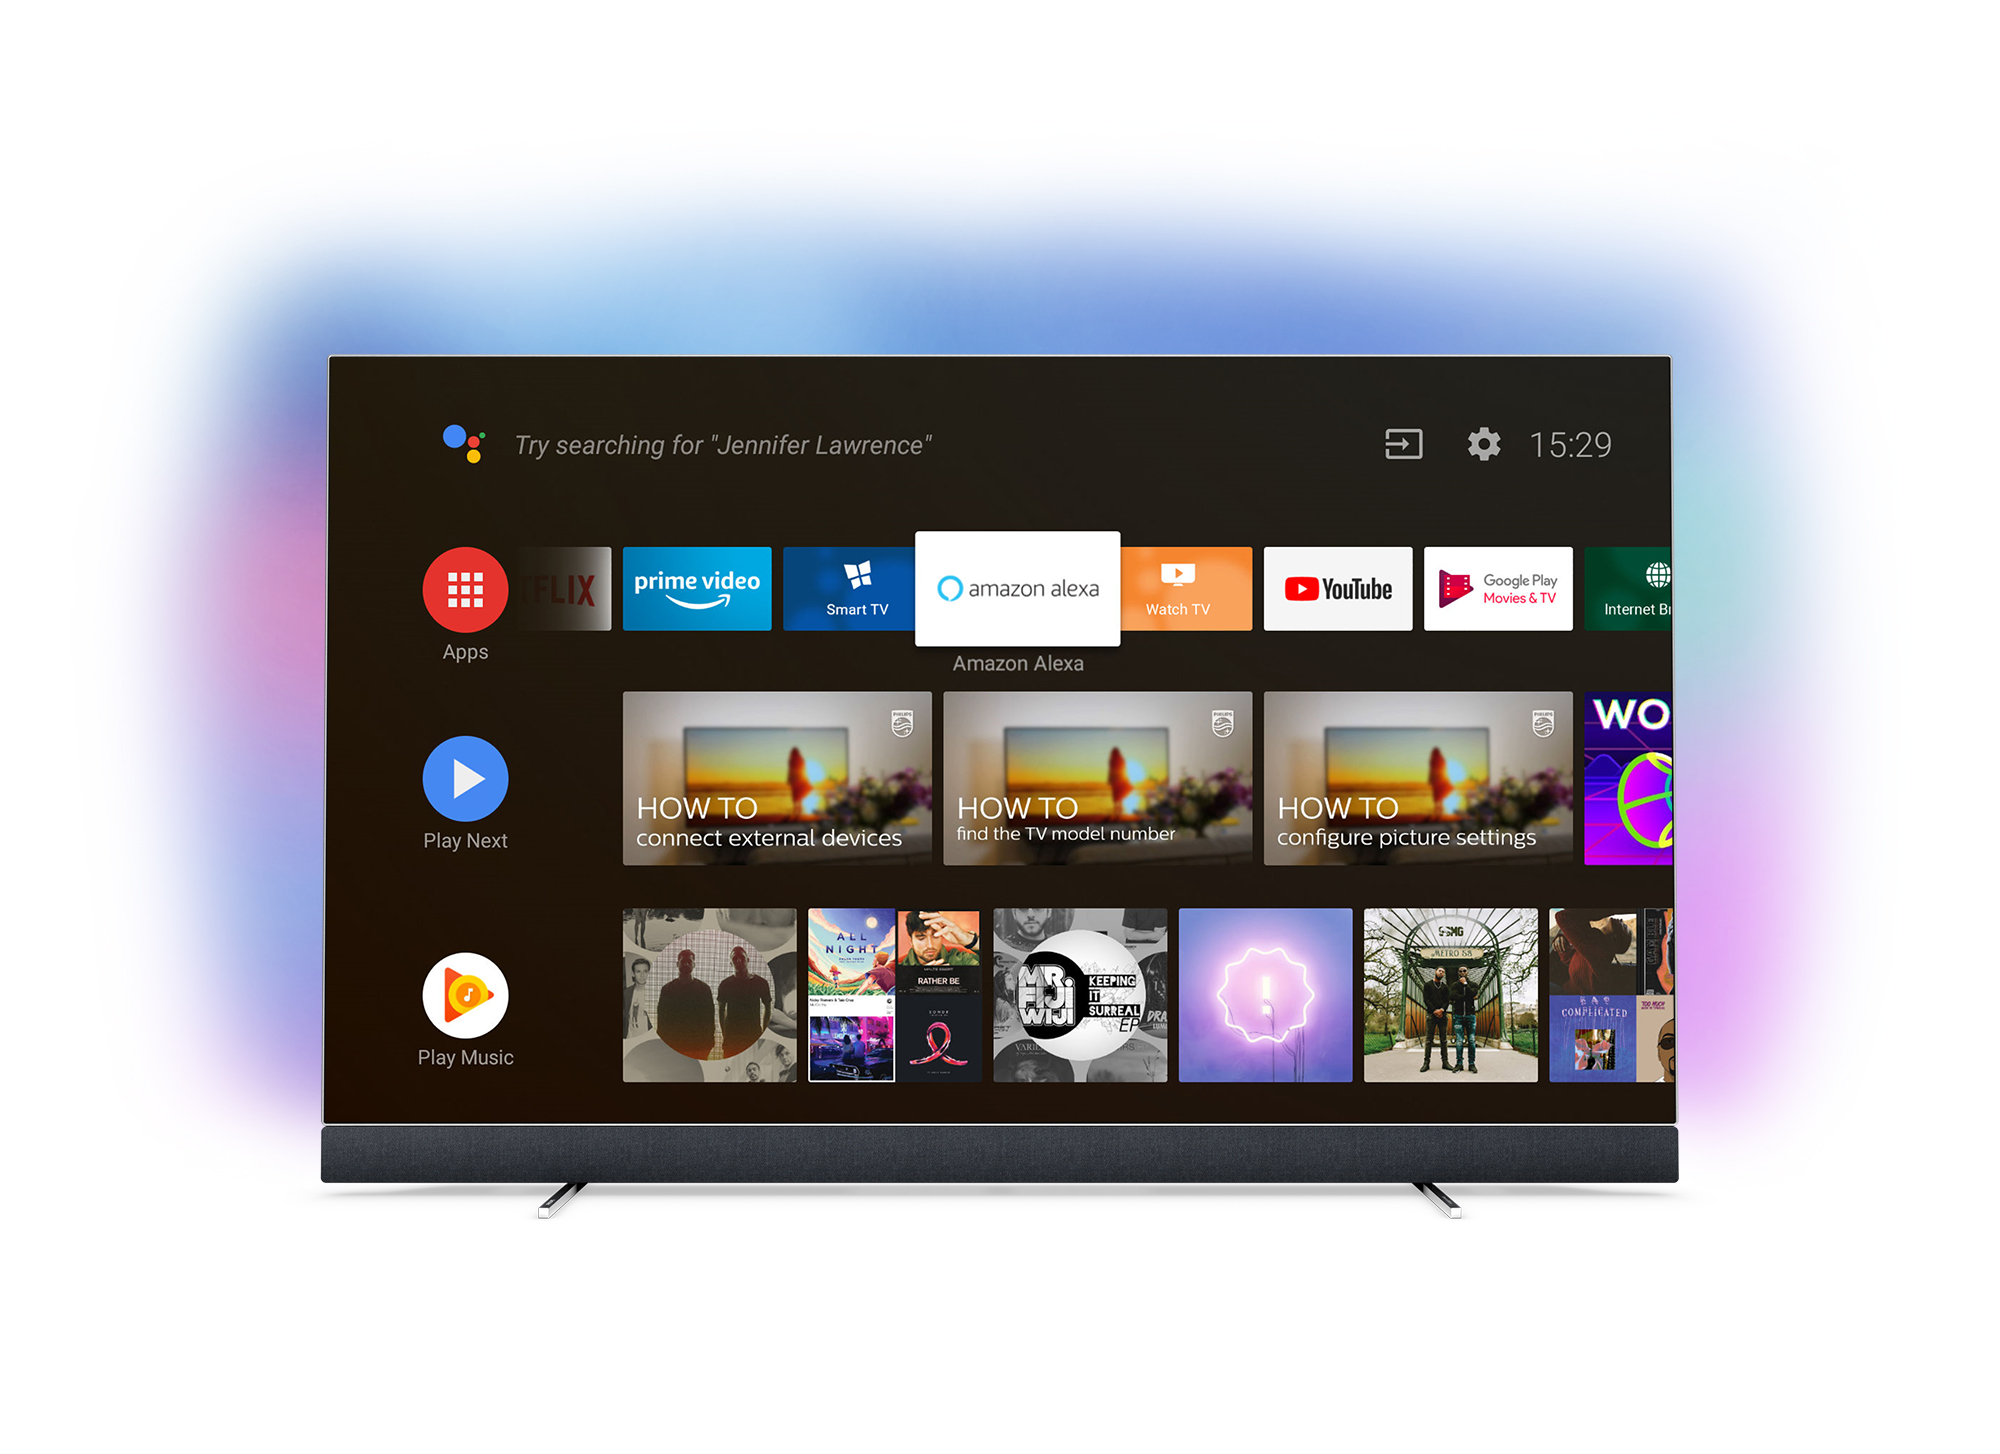 Philips Tv Veröffentlicht Amazon Alexa Skill News Center Philips